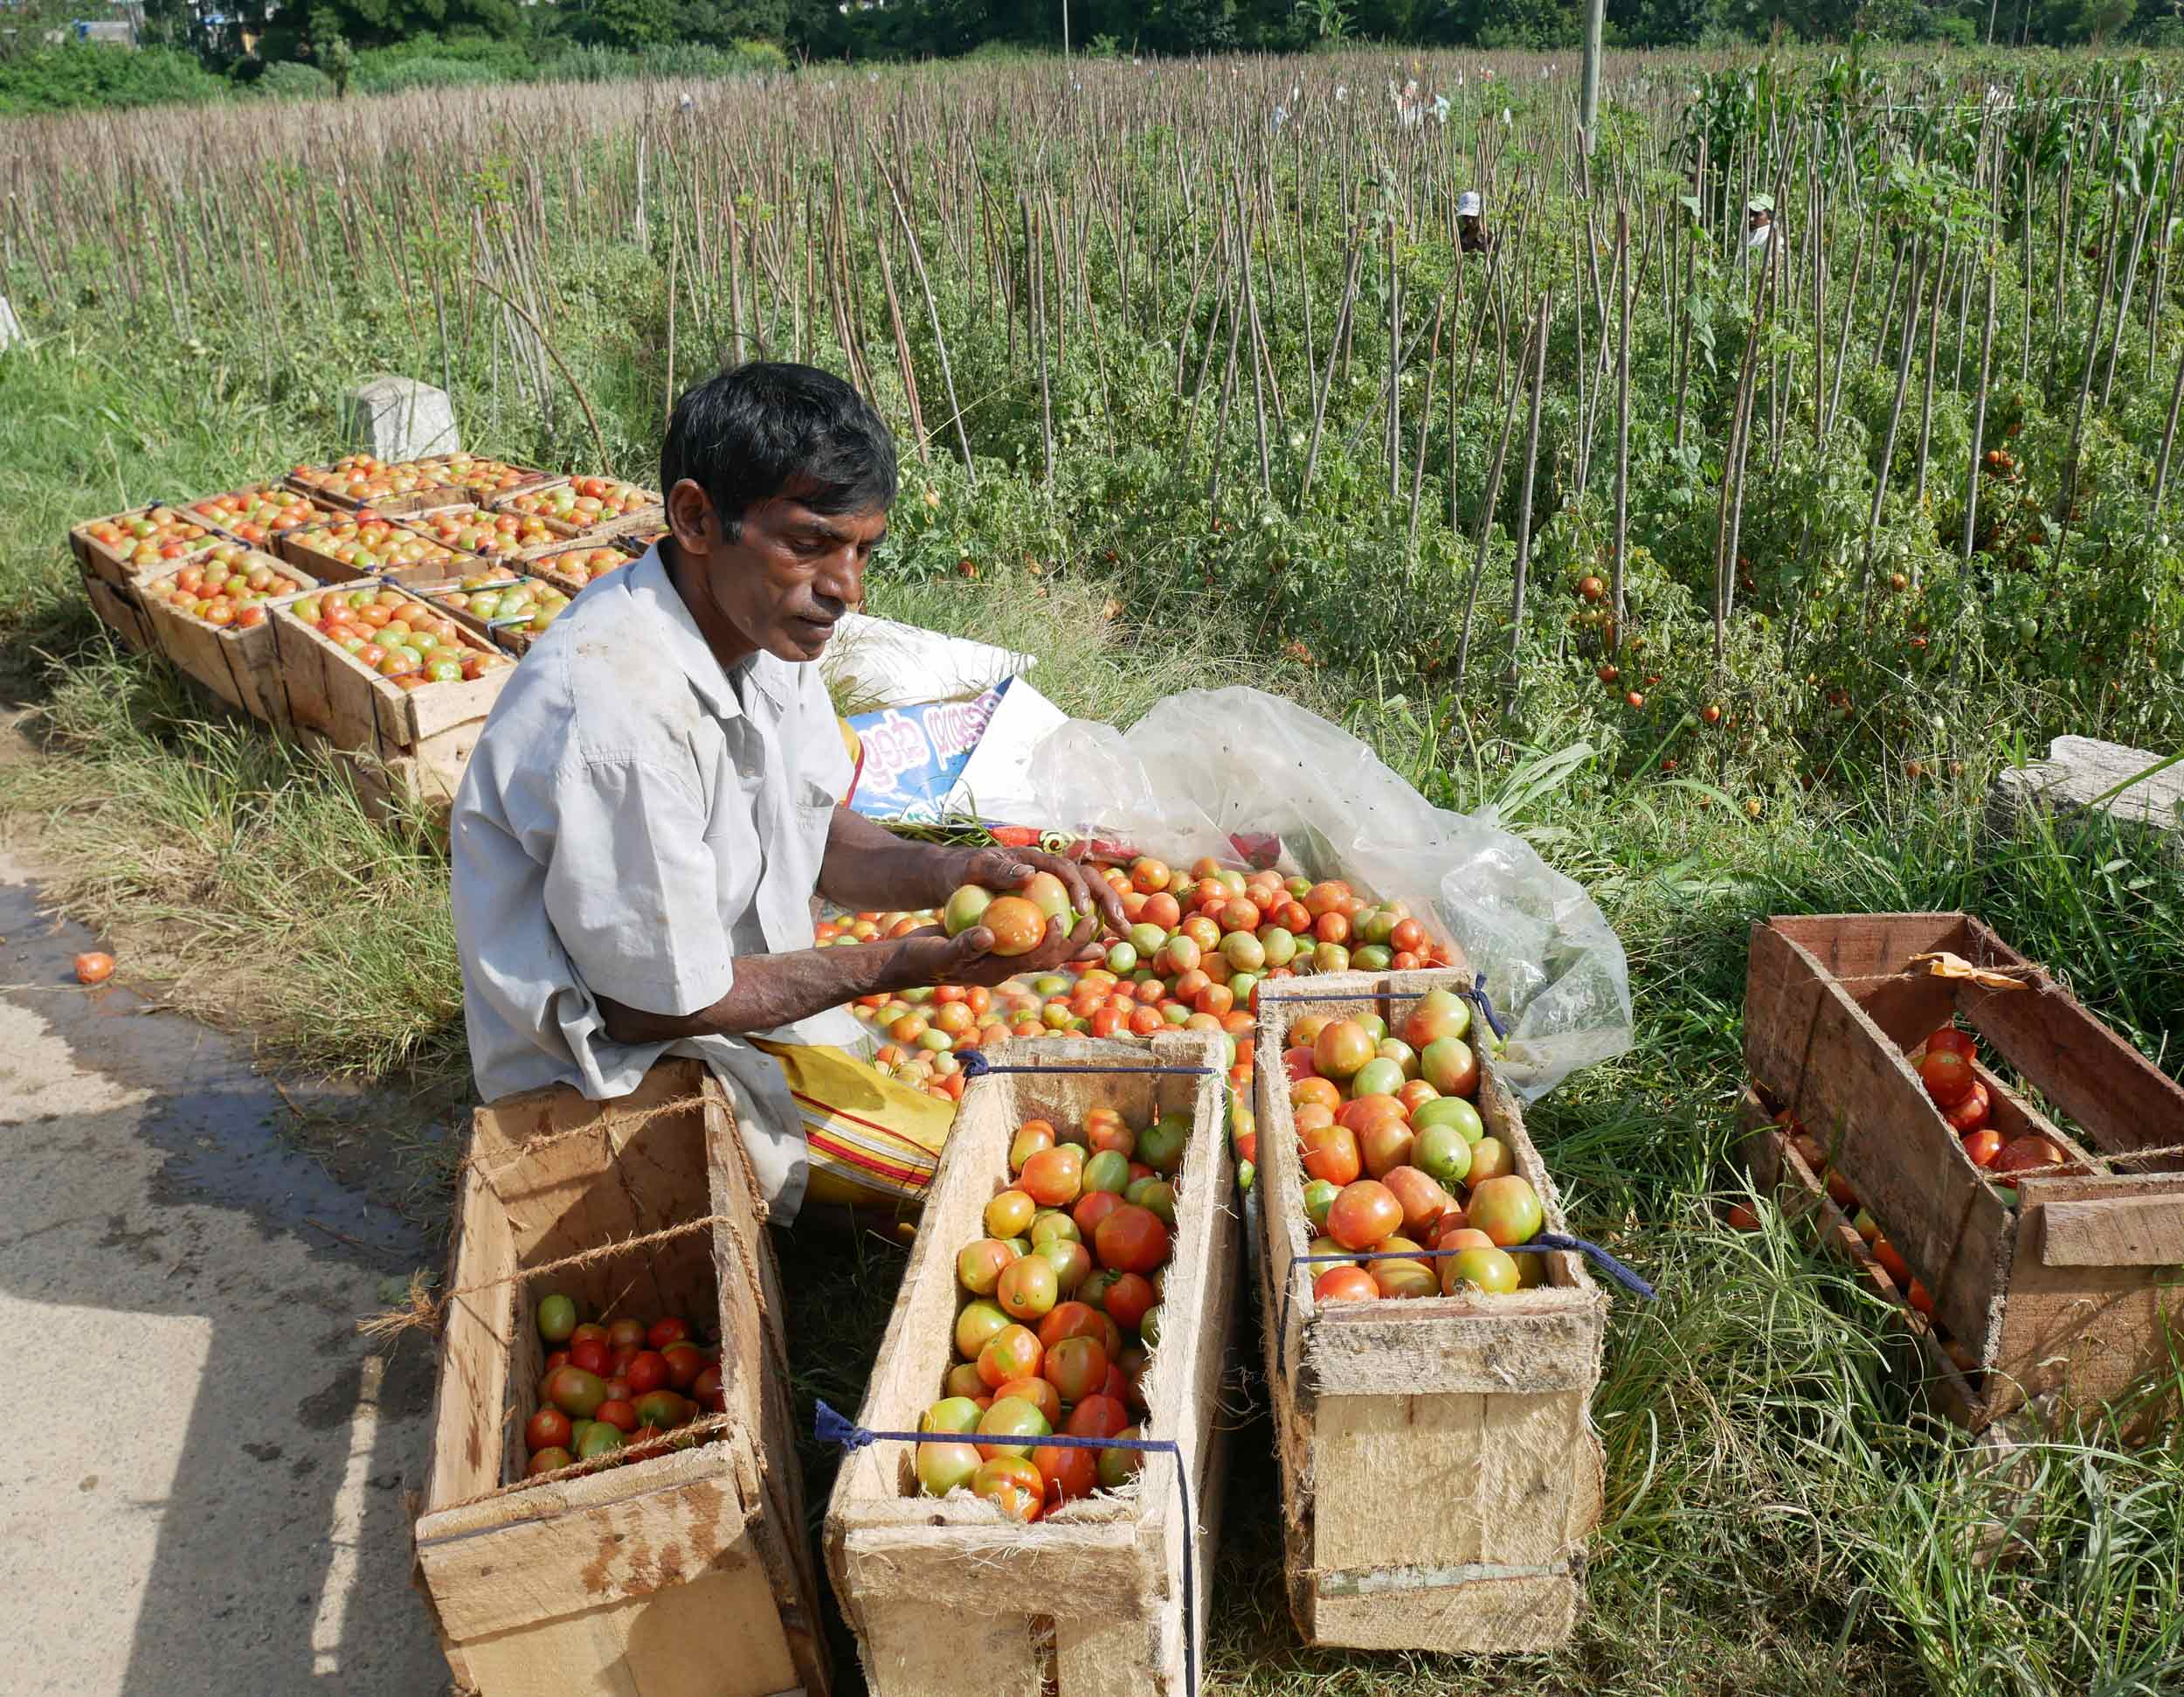 A man by the side of the road sorted tomatoes, which were harvested in the fertile valleys of Ella.